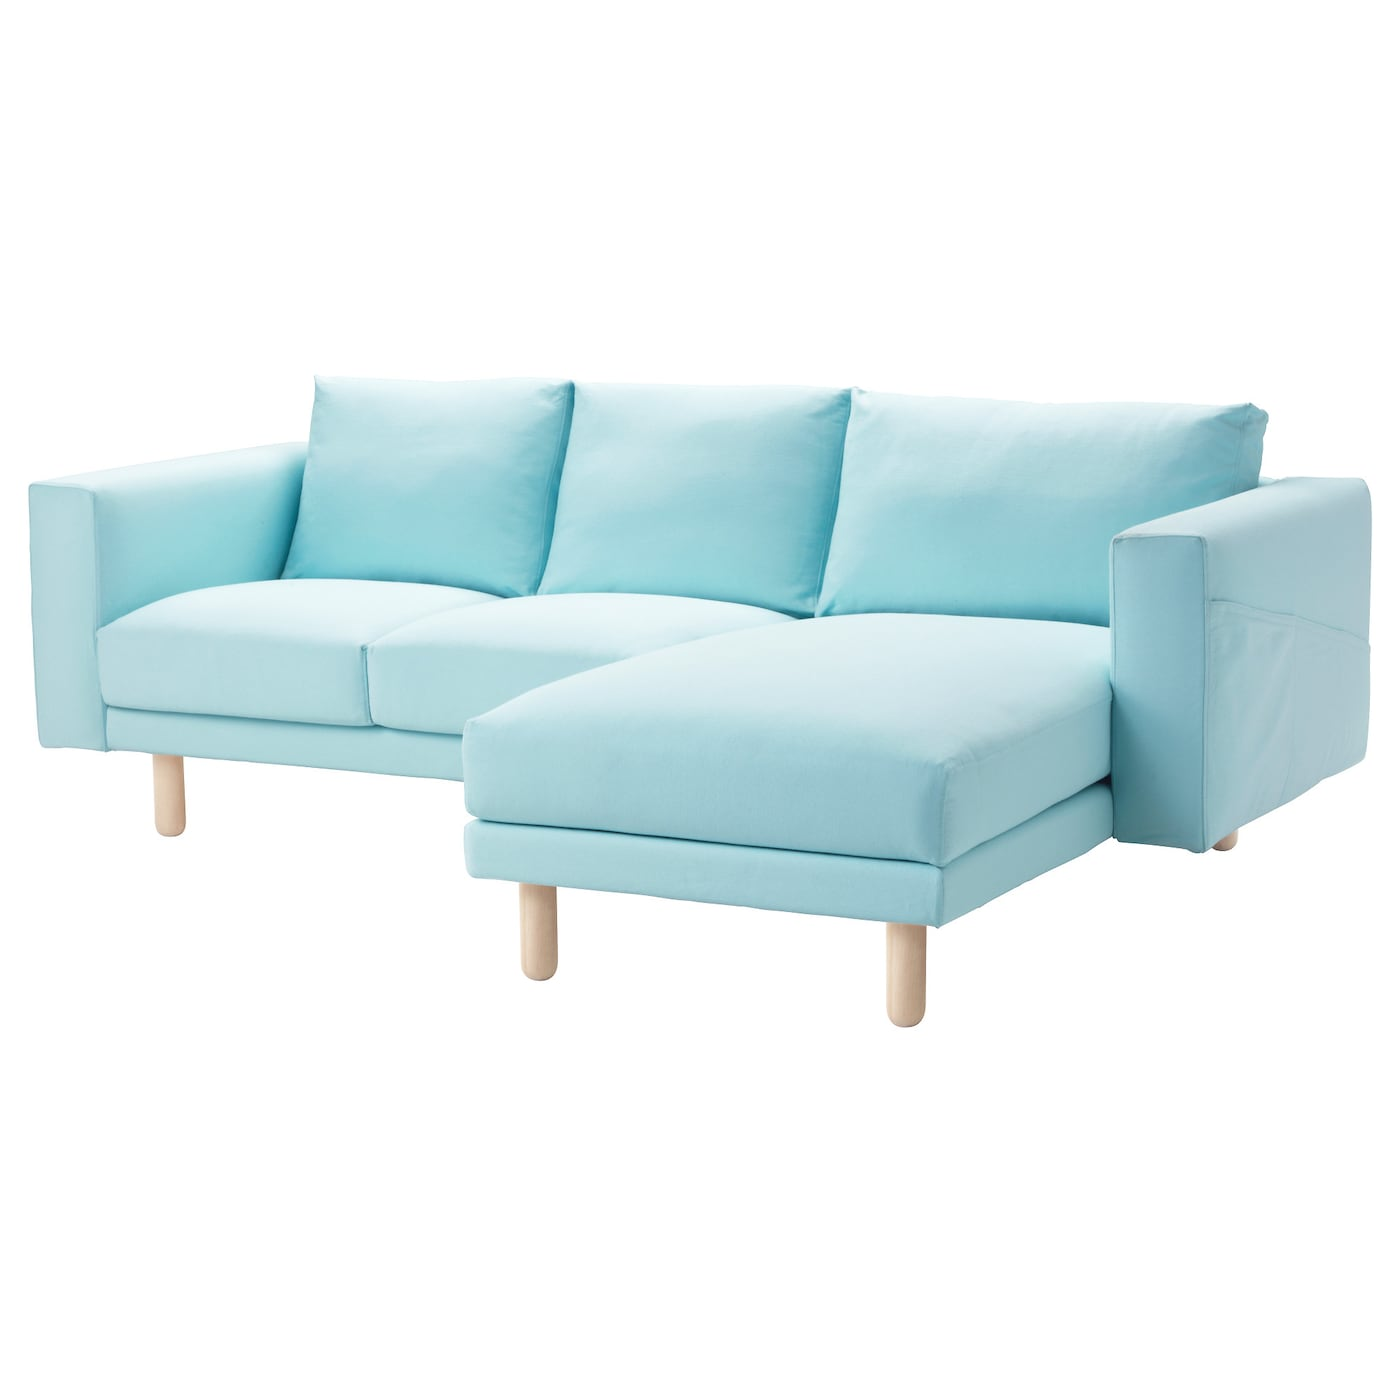 Norsborg two seat sofa with chaise longue gr sbo light for 2 seater sofa with chaise